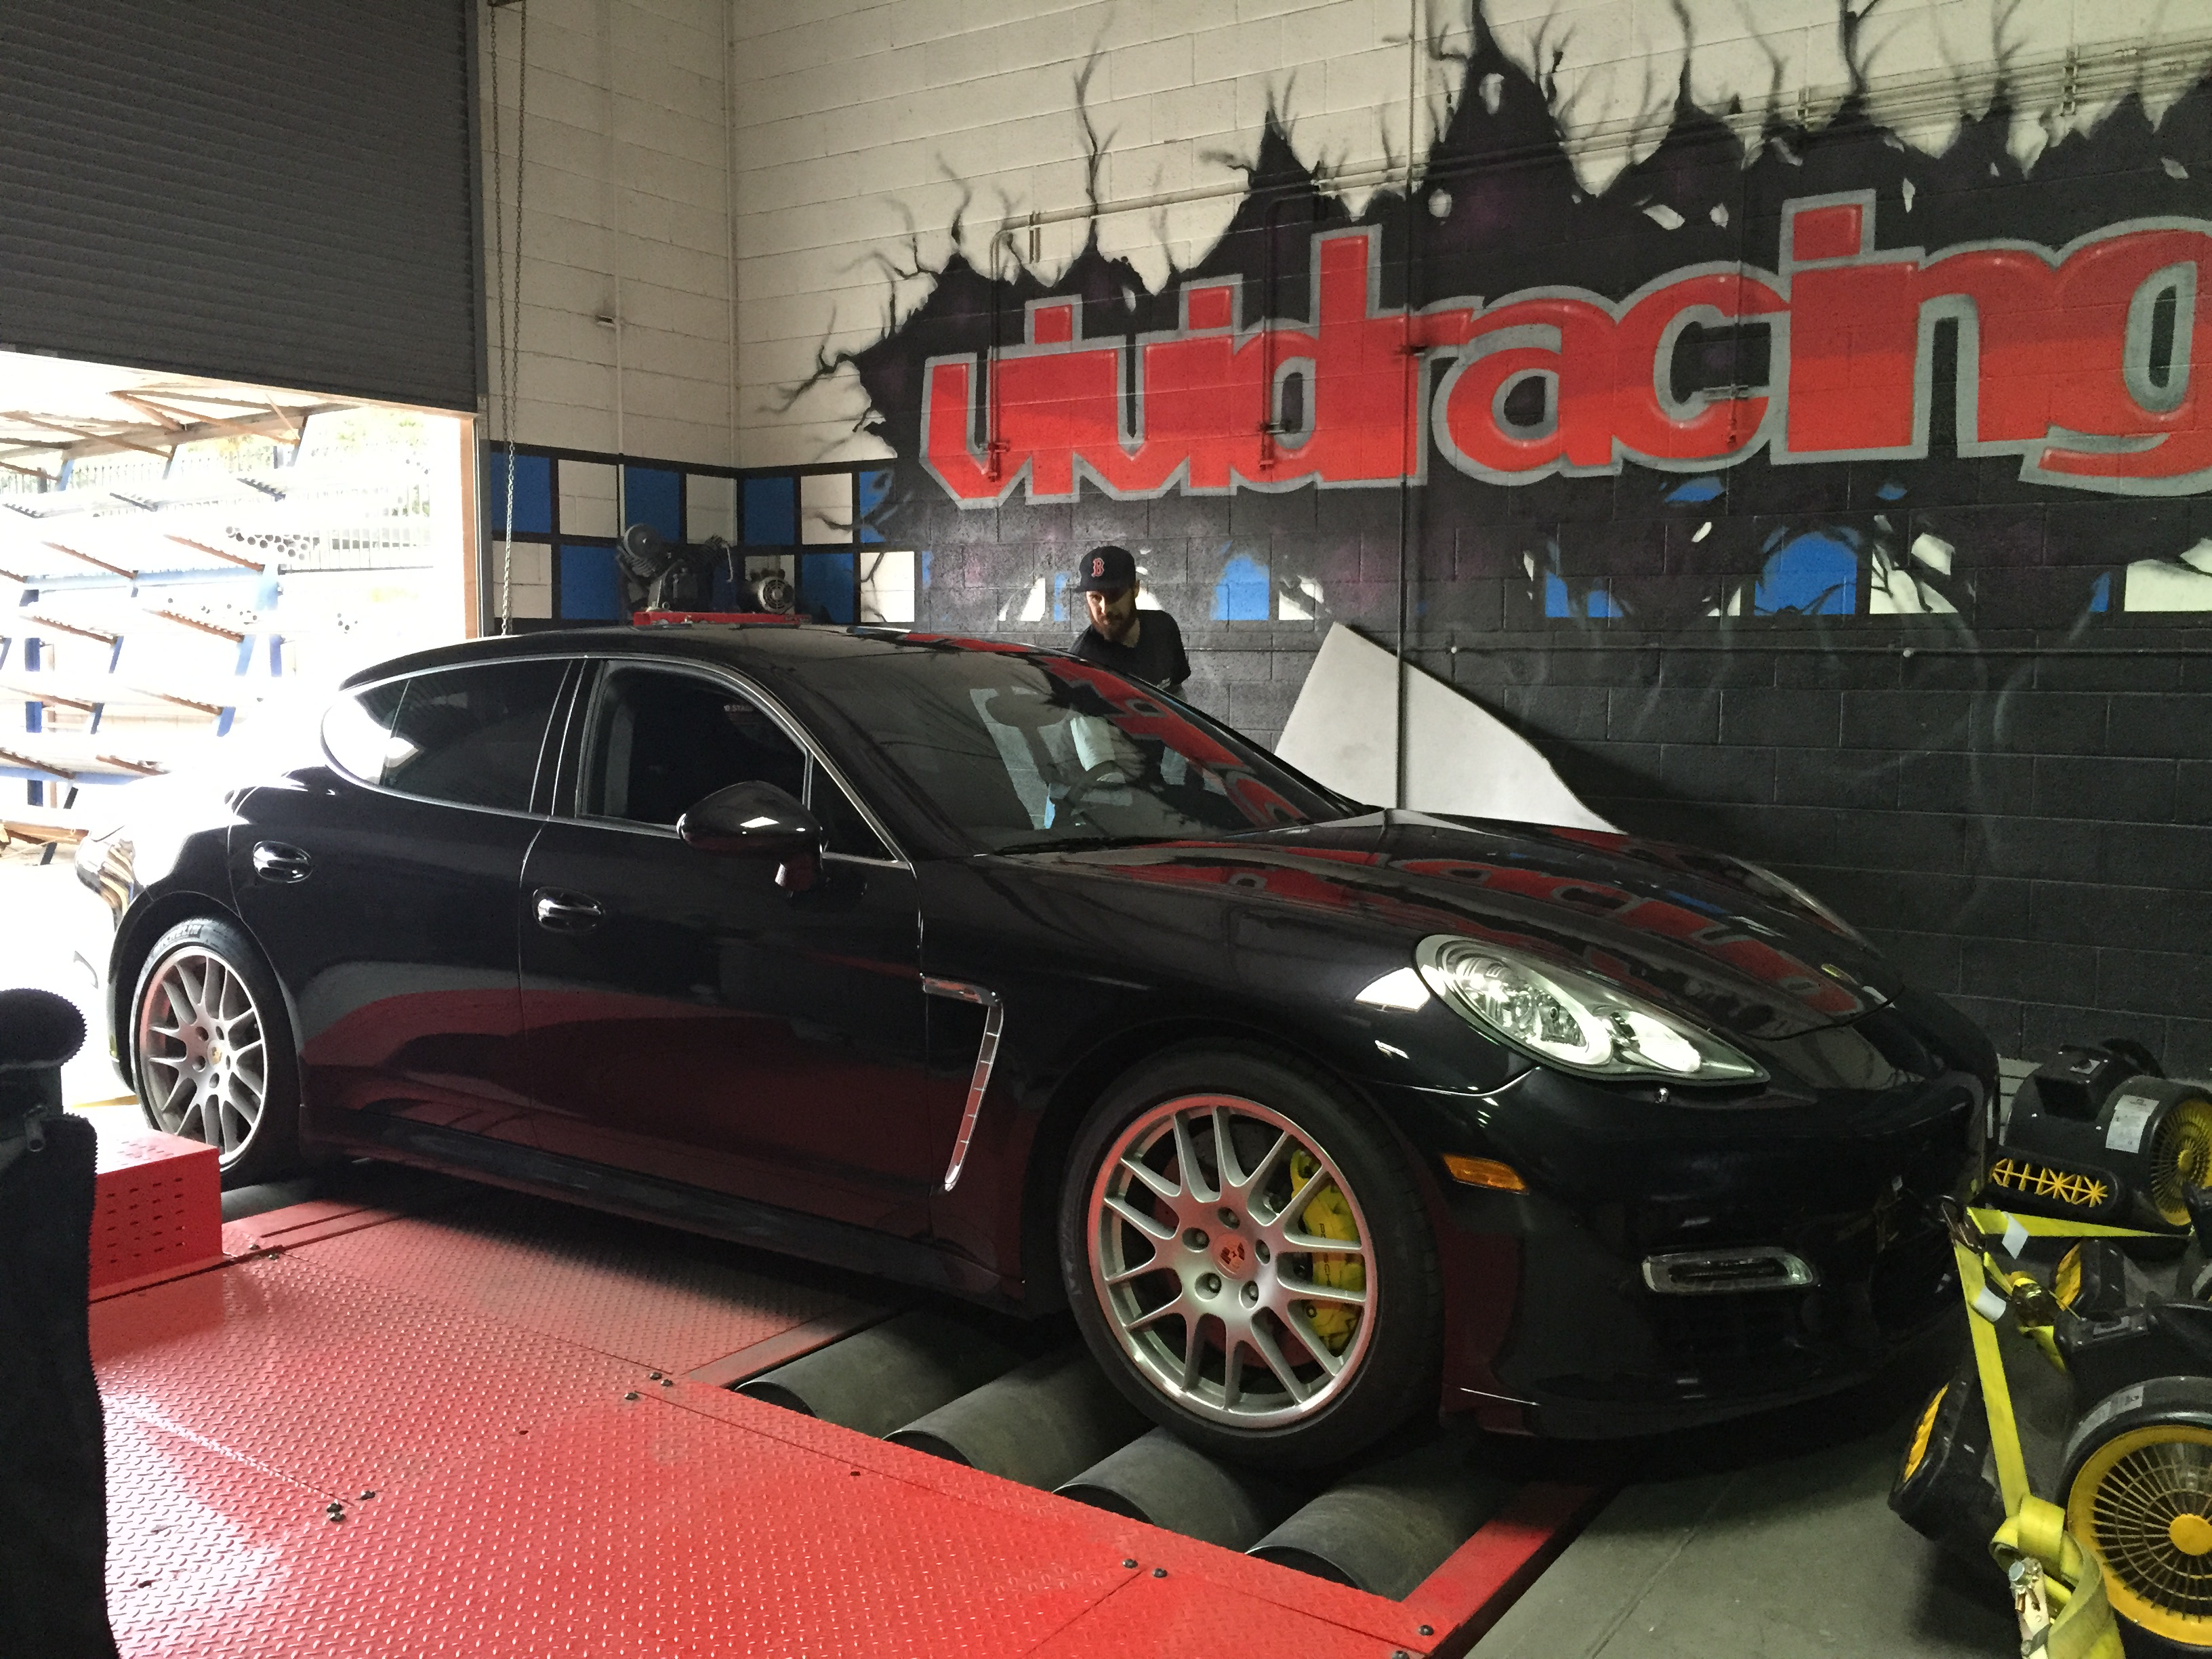 VR Tuned ECU Flash Tune Porsche 970 Panamera Turbo S 4.8 V8 570hp 14-17